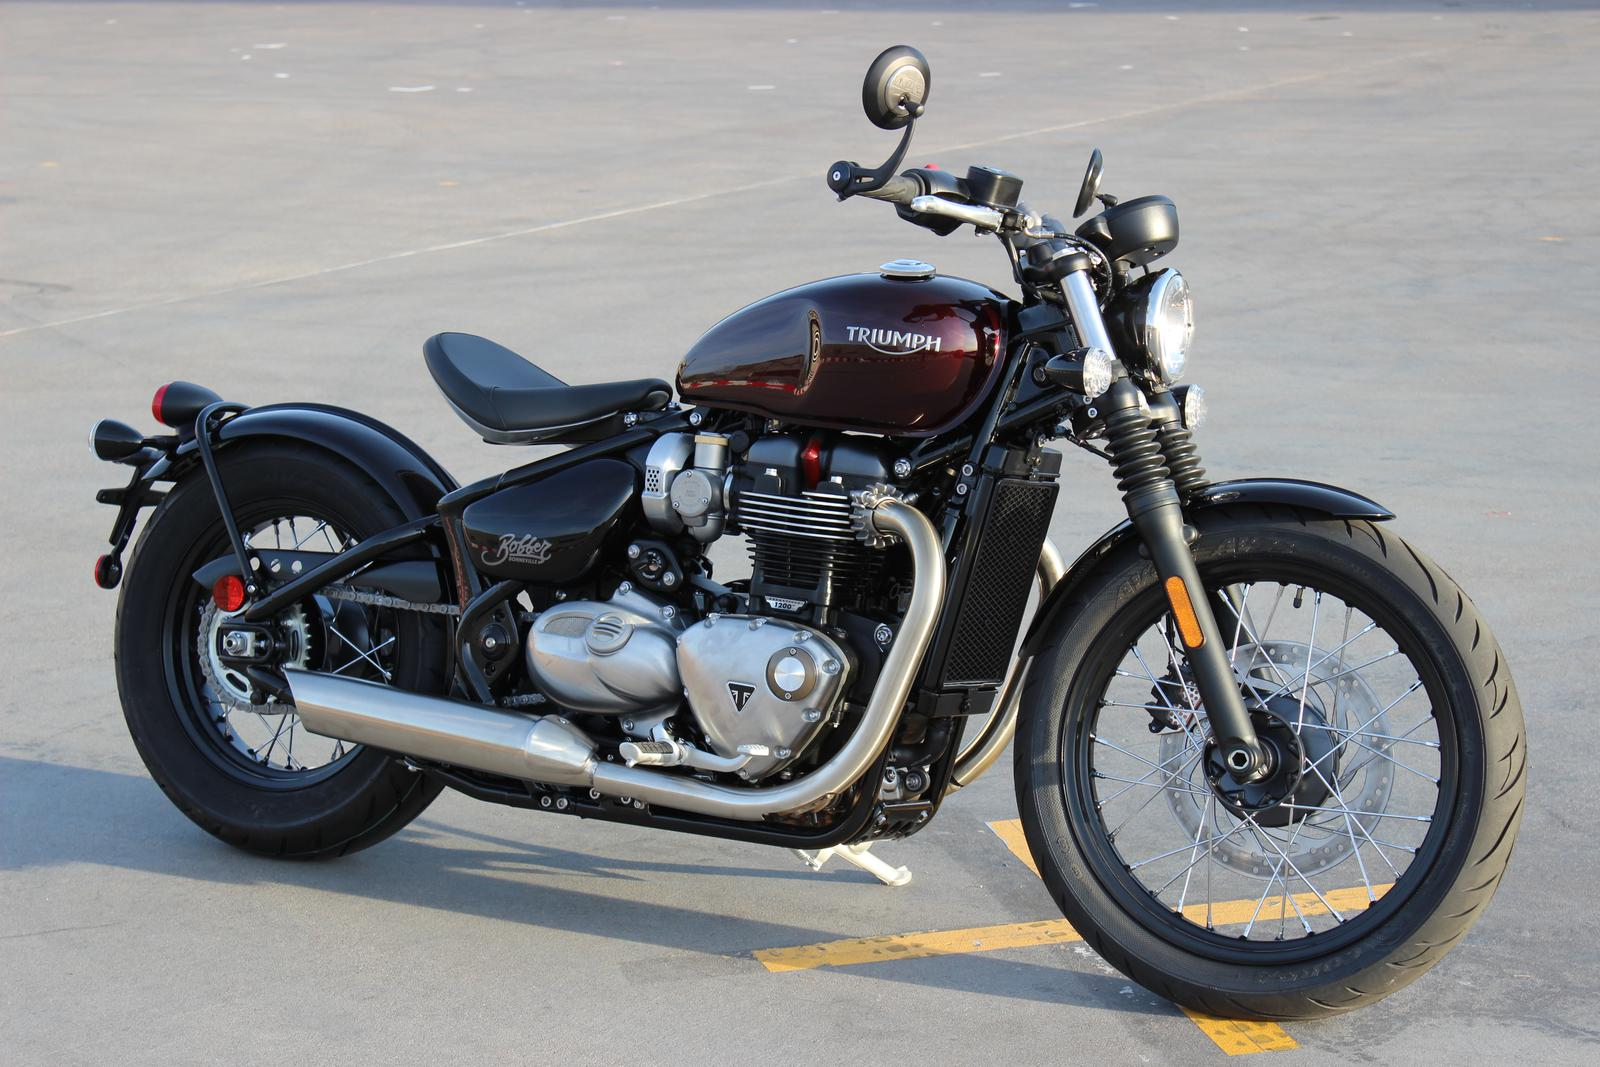 2018 Triumph Bonneville Bobber Color For Sale In Scottsdale Az